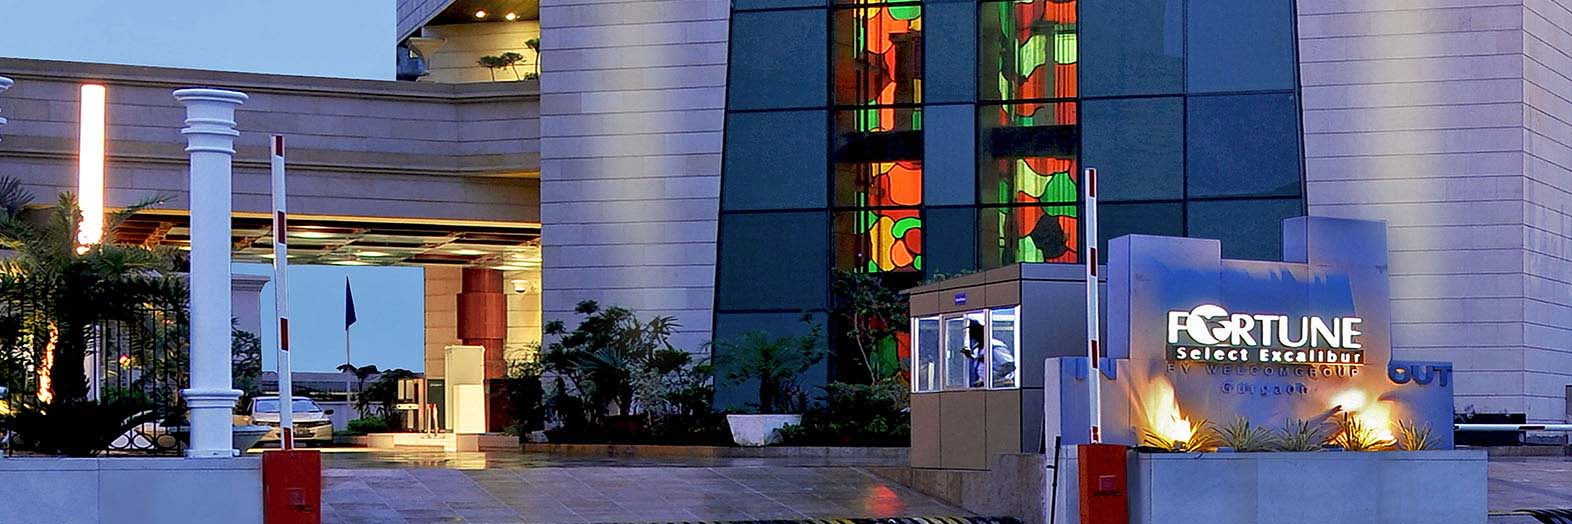 Hotels in Gurgaon - Fortune Select Excalibur